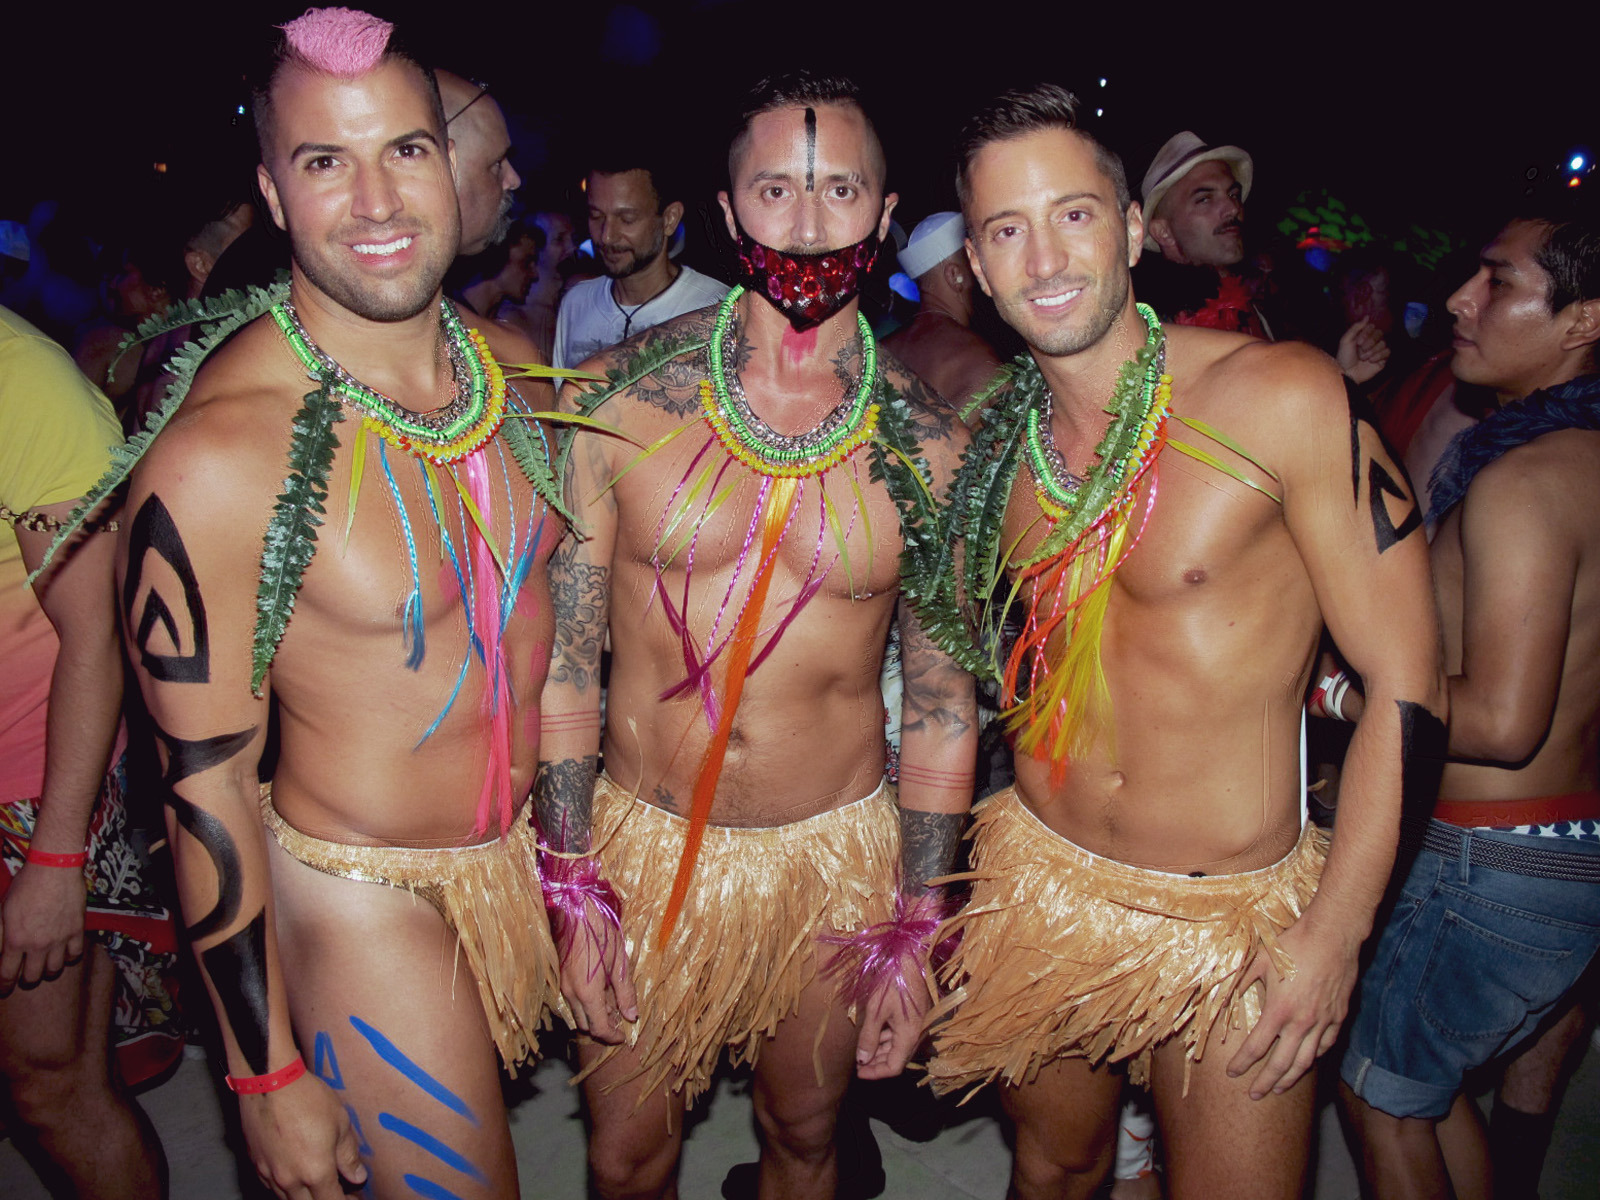 Gay party themes